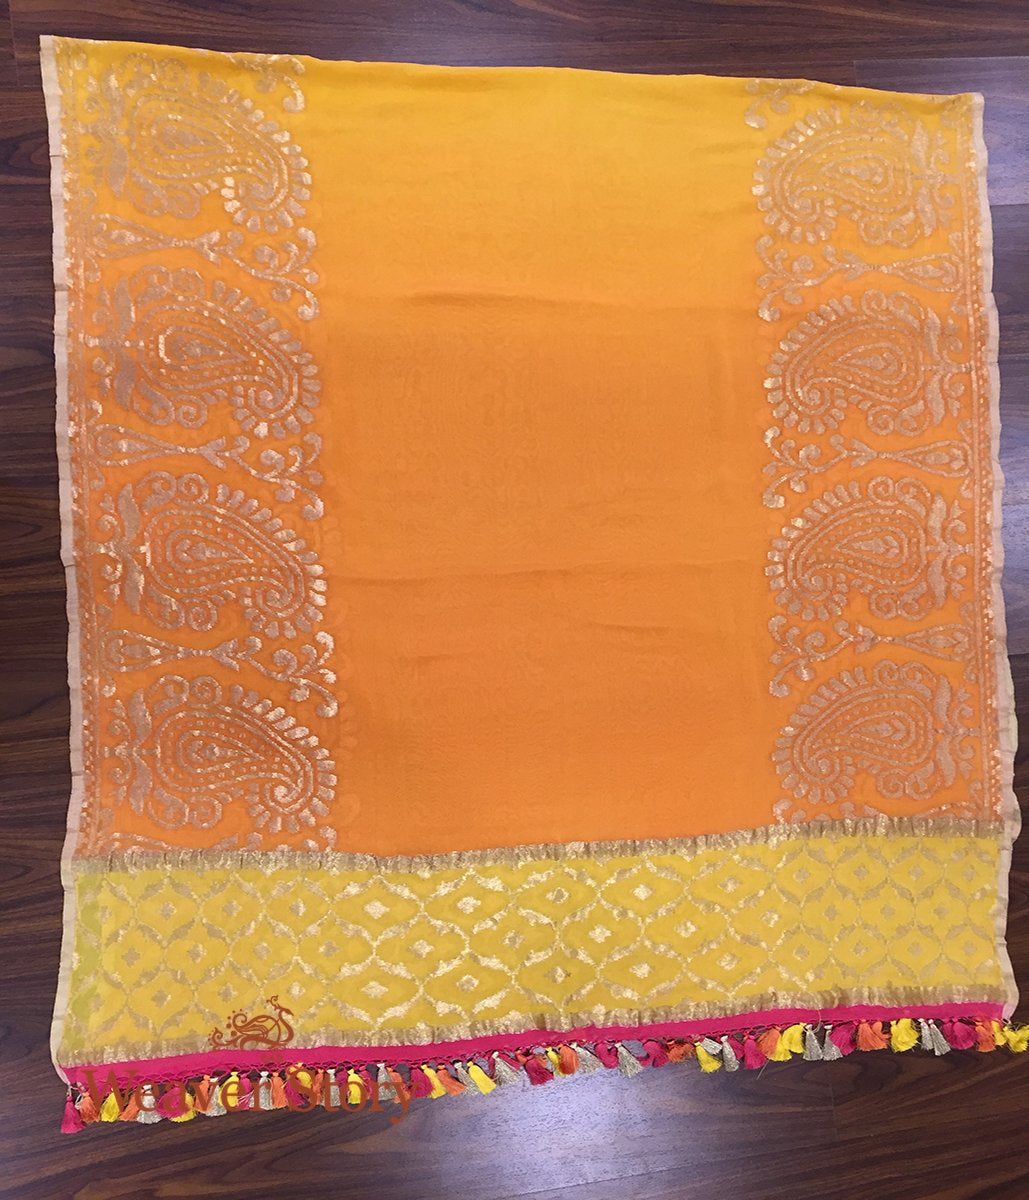 Handwoven Ombre Dye Orange and Yellow Banarasi Georgette Dupatta